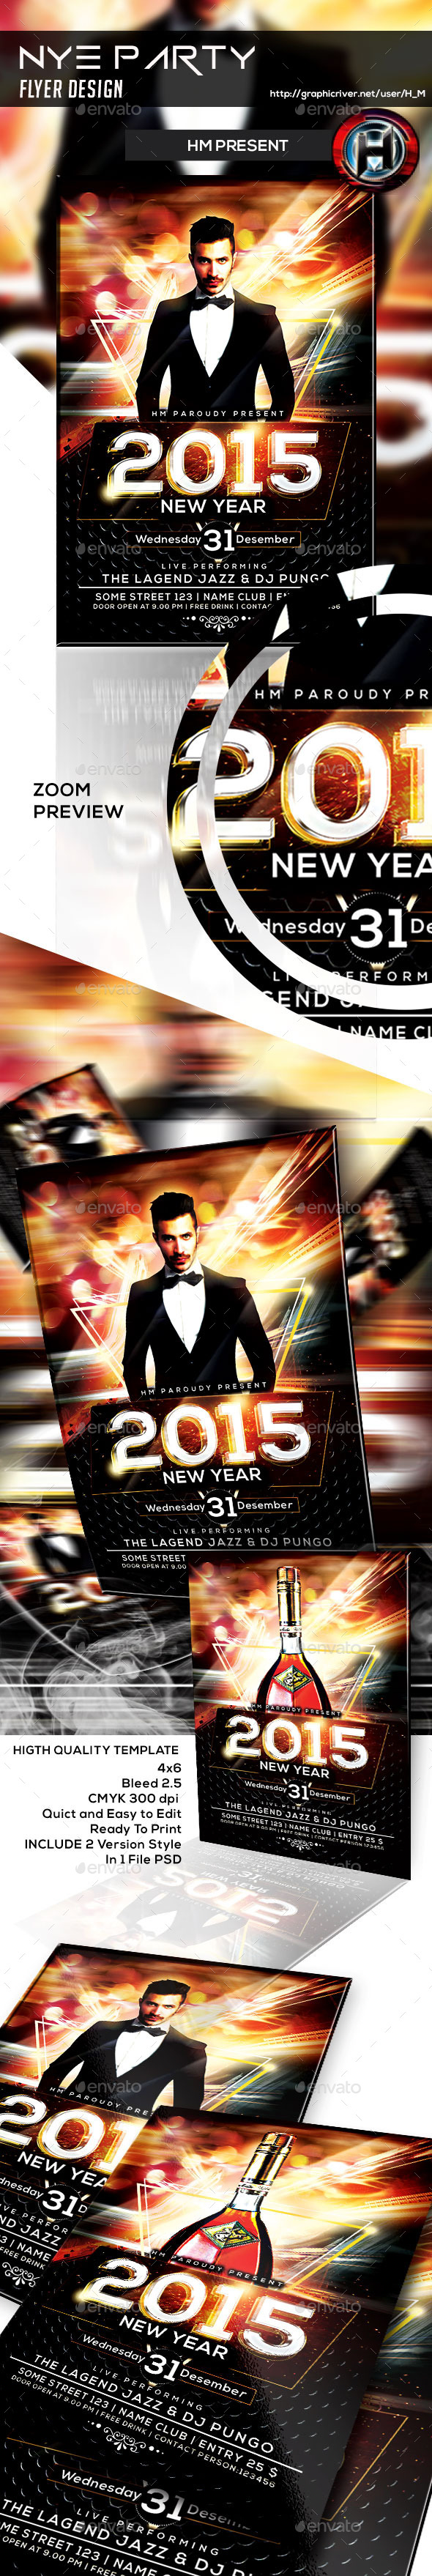 GraphicRiver NYE Party Flyer Design 9616107